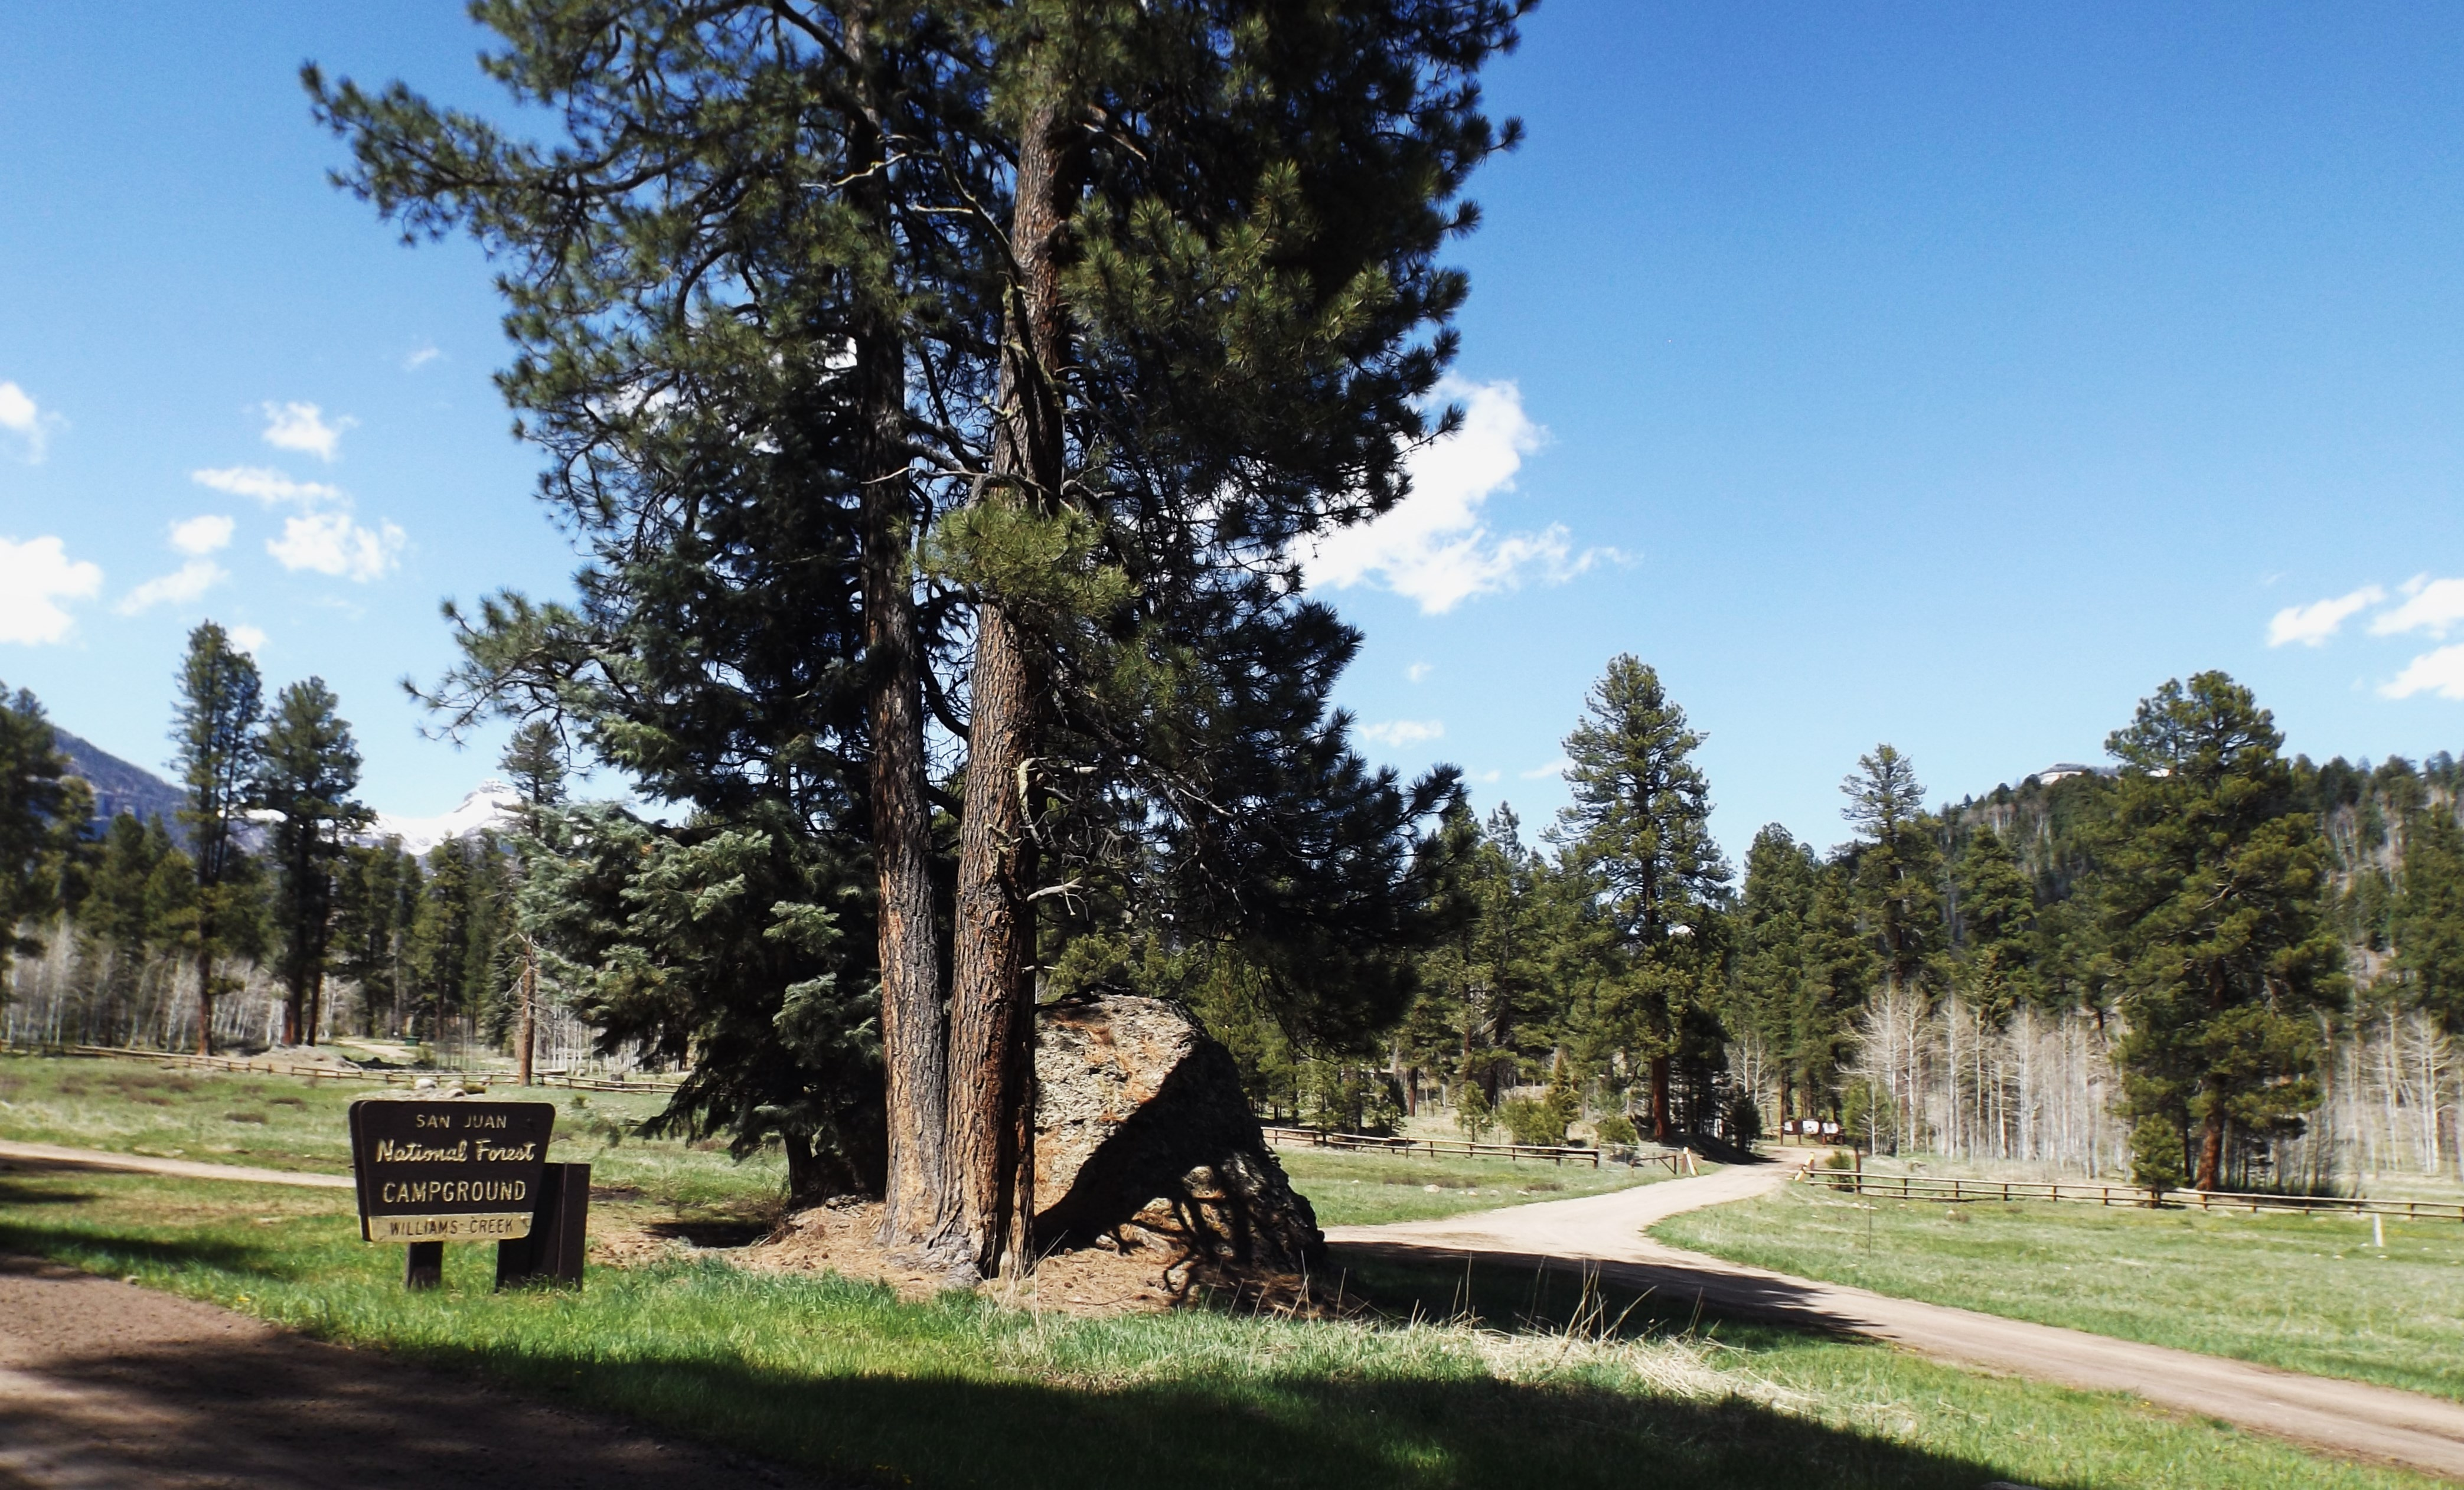 San Juan National Forest - Williams Creek Campground